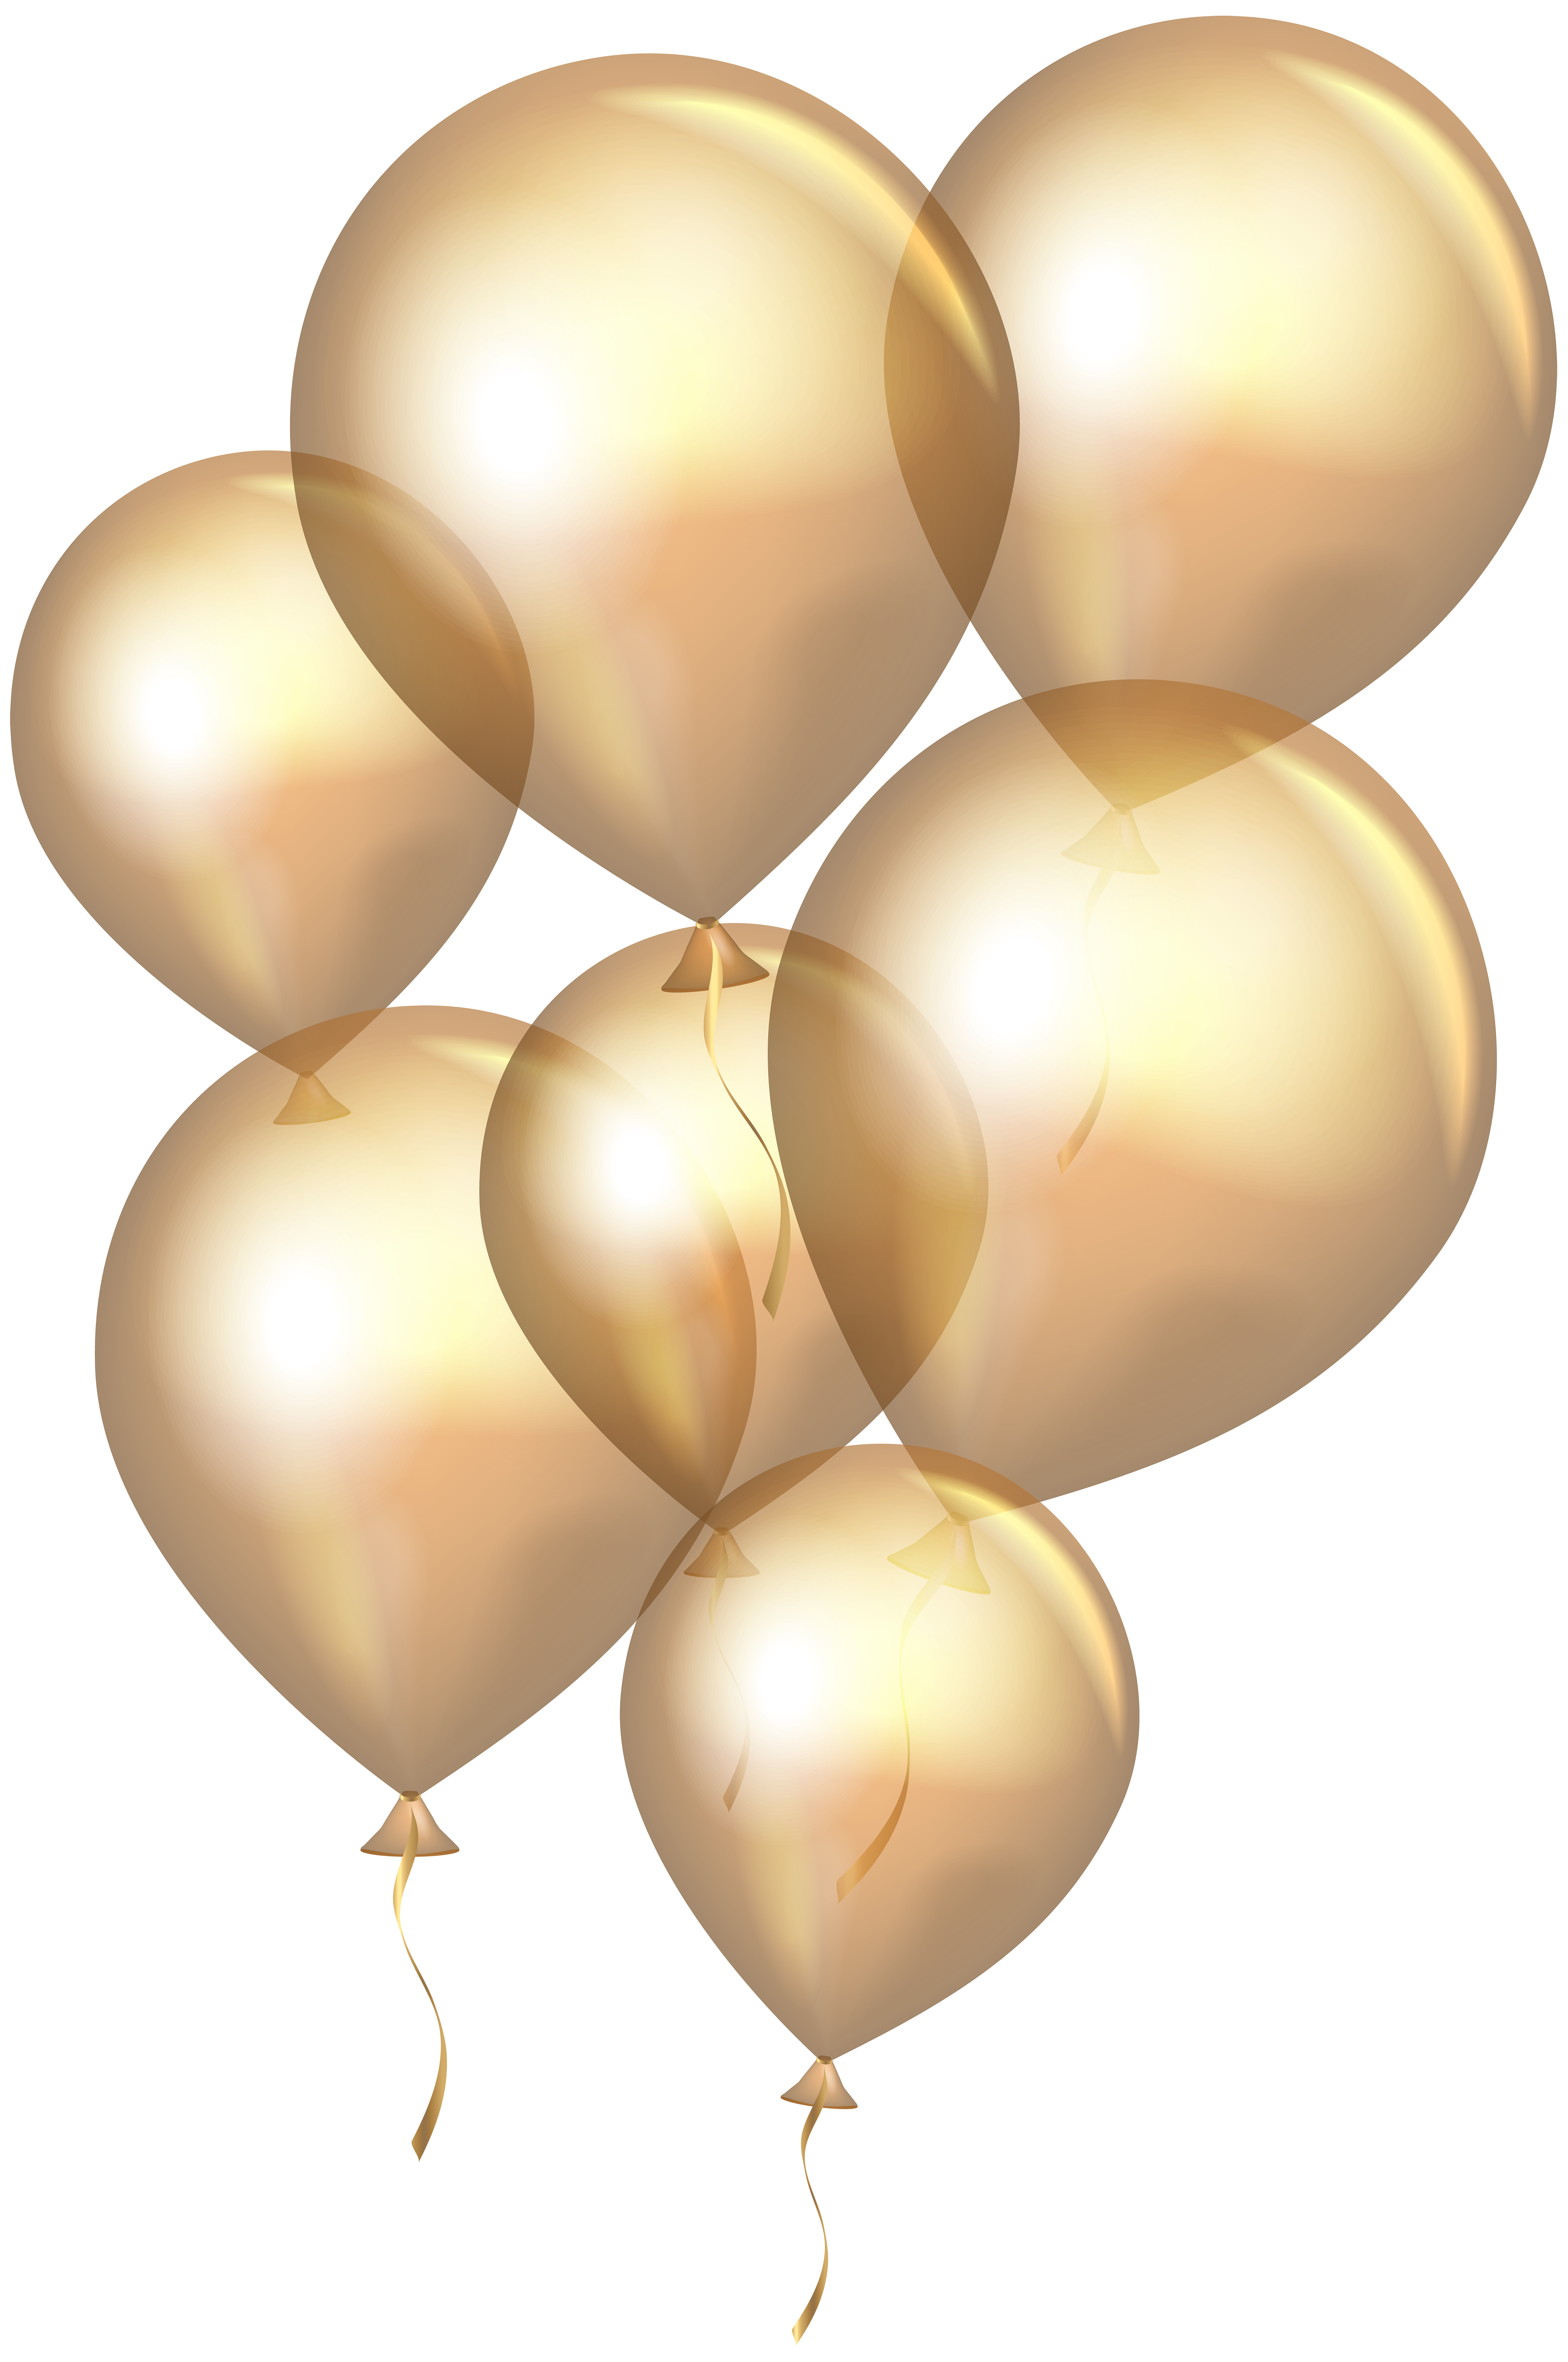 Transparent Gold Balloons Png Clip Art Gallery Yopriceville High Quality Images And Transparent Png Free Clipart Gold Balloons Balloons Free Clip Art